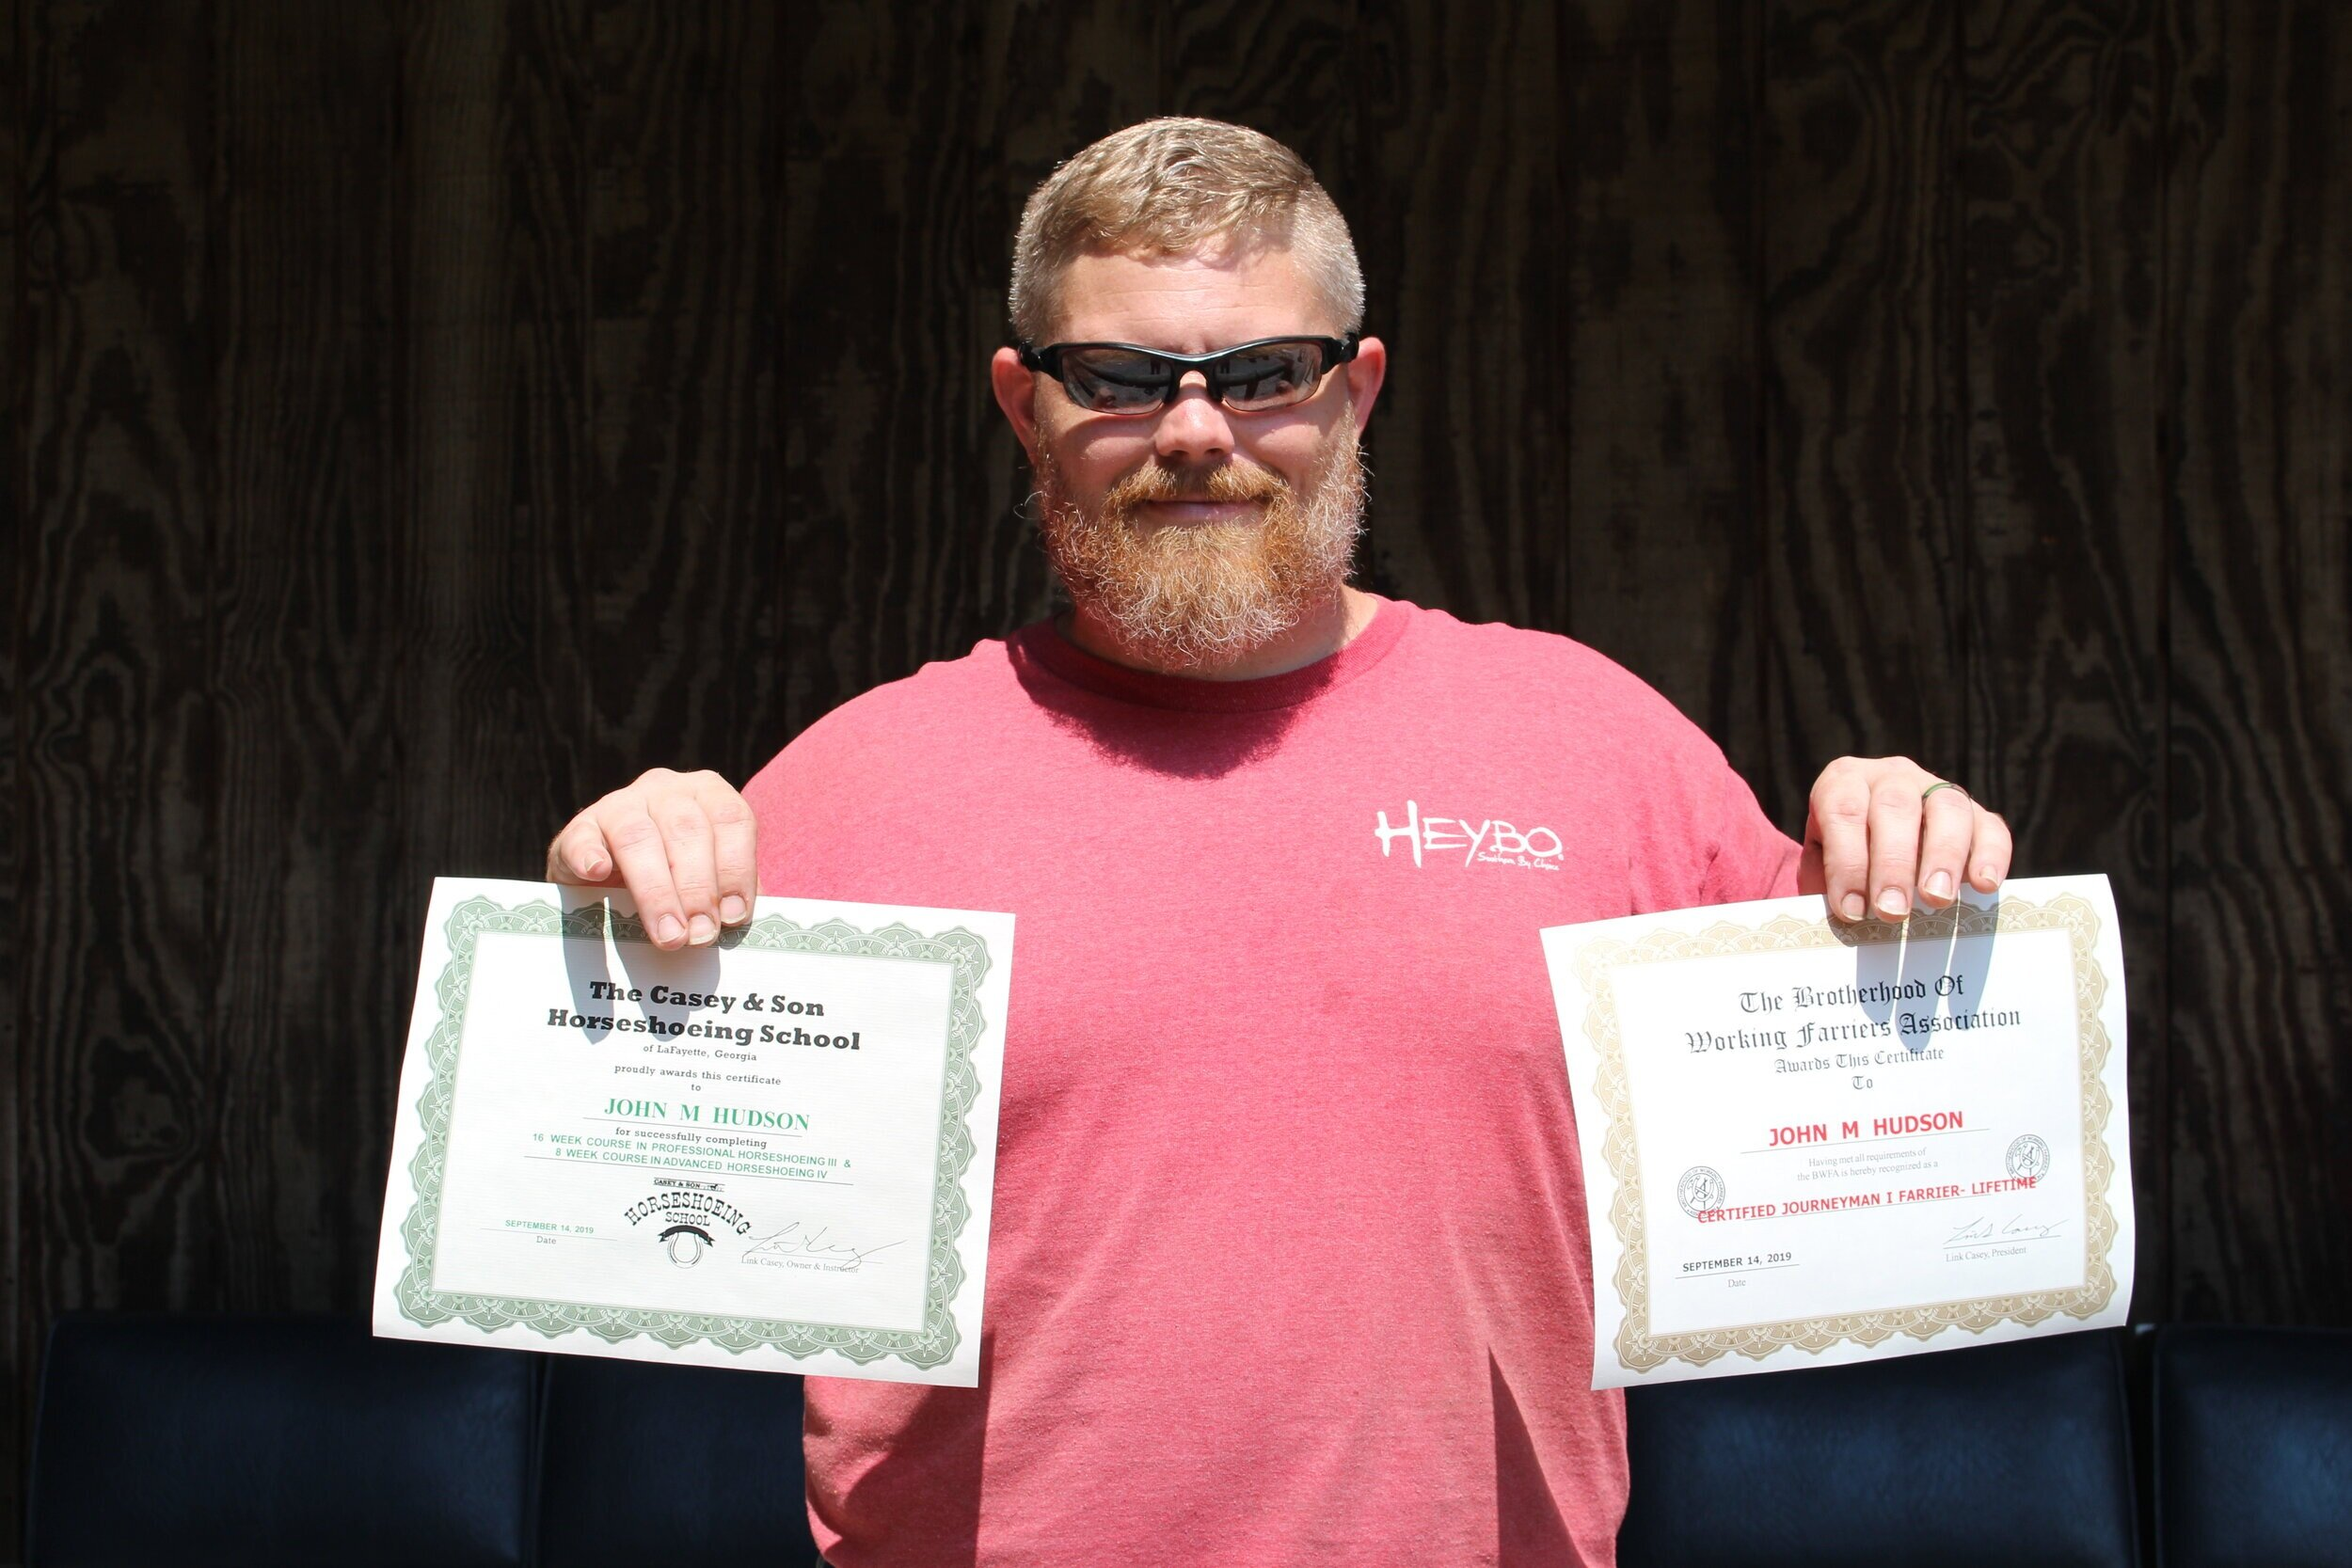 John with his Horseshoeing IV Certification and BWFA Journeyman I Certification.